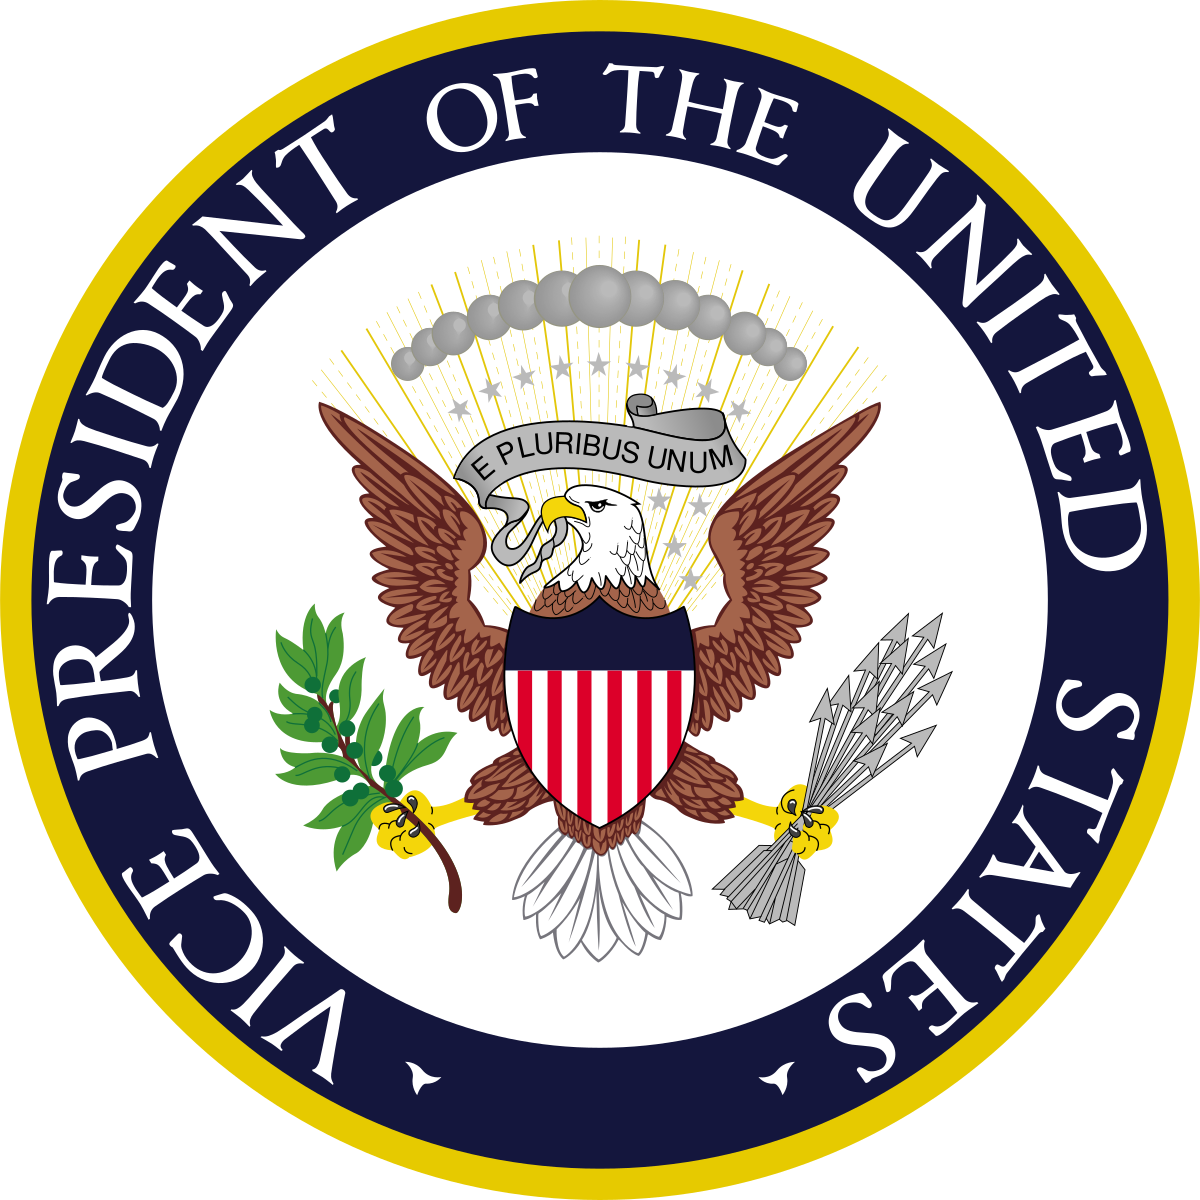 Clipart presidents united states graphic royalty free Vice President of the United States - Wikipedia graphic royalty free